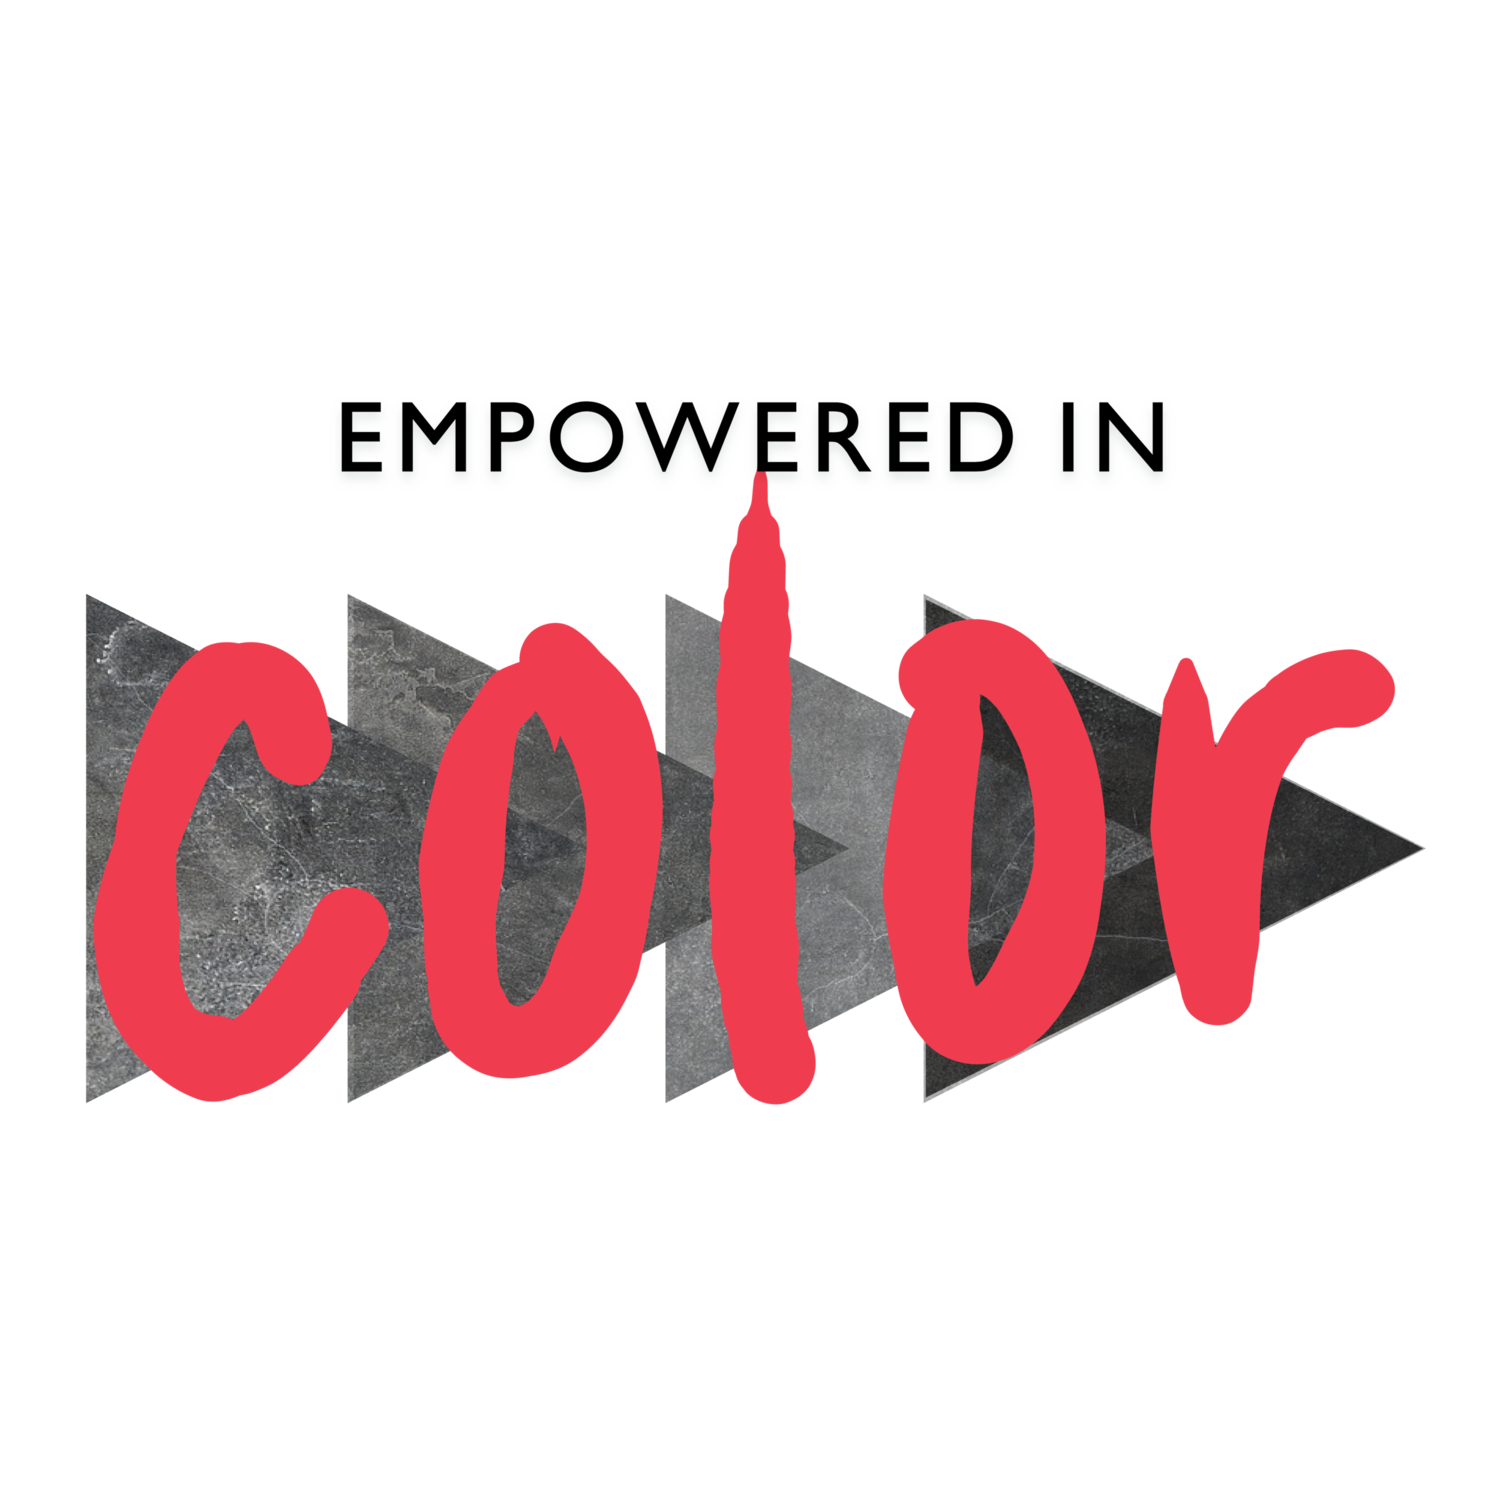 Empowered in Color